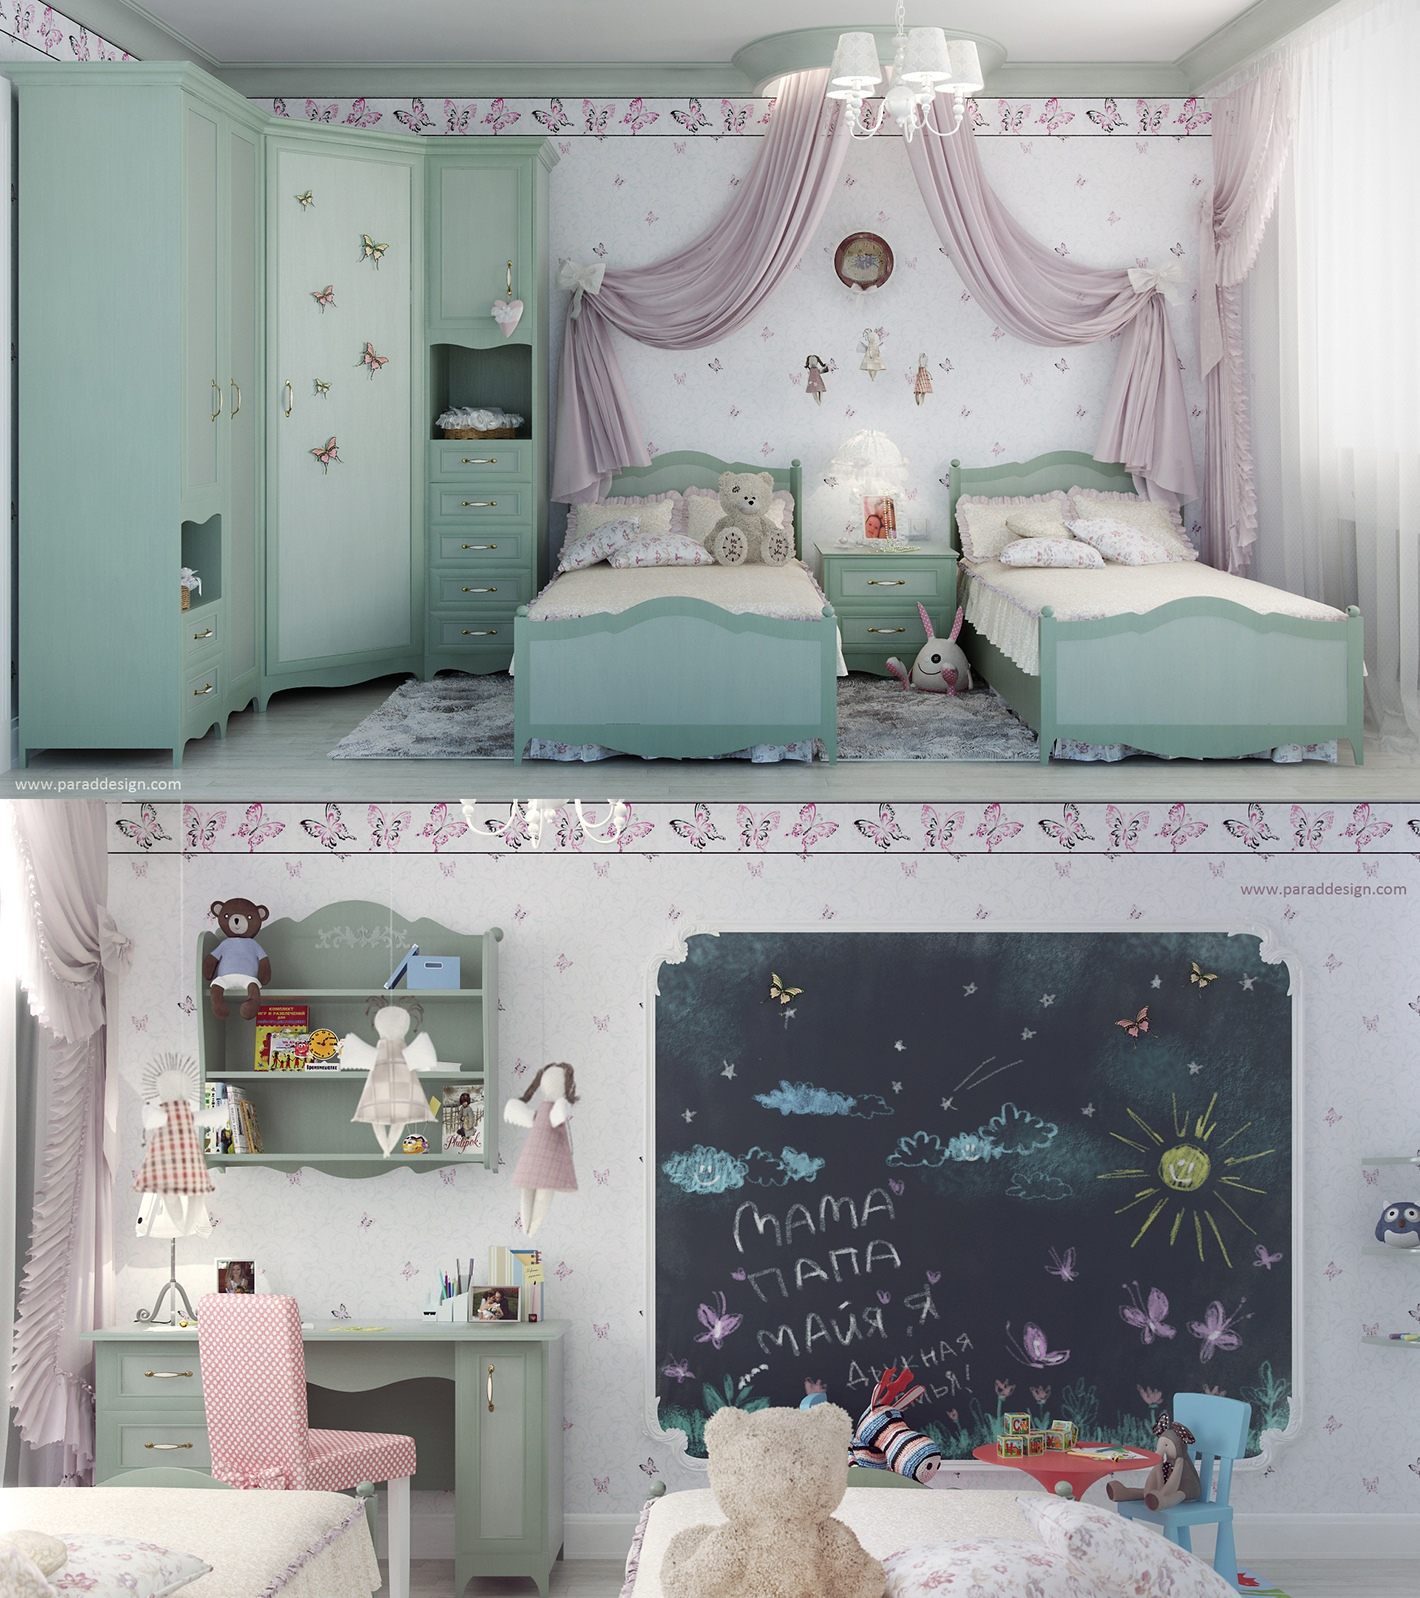 2 little girls bedroom 7 interior design ideas for Bedroom designs for girls